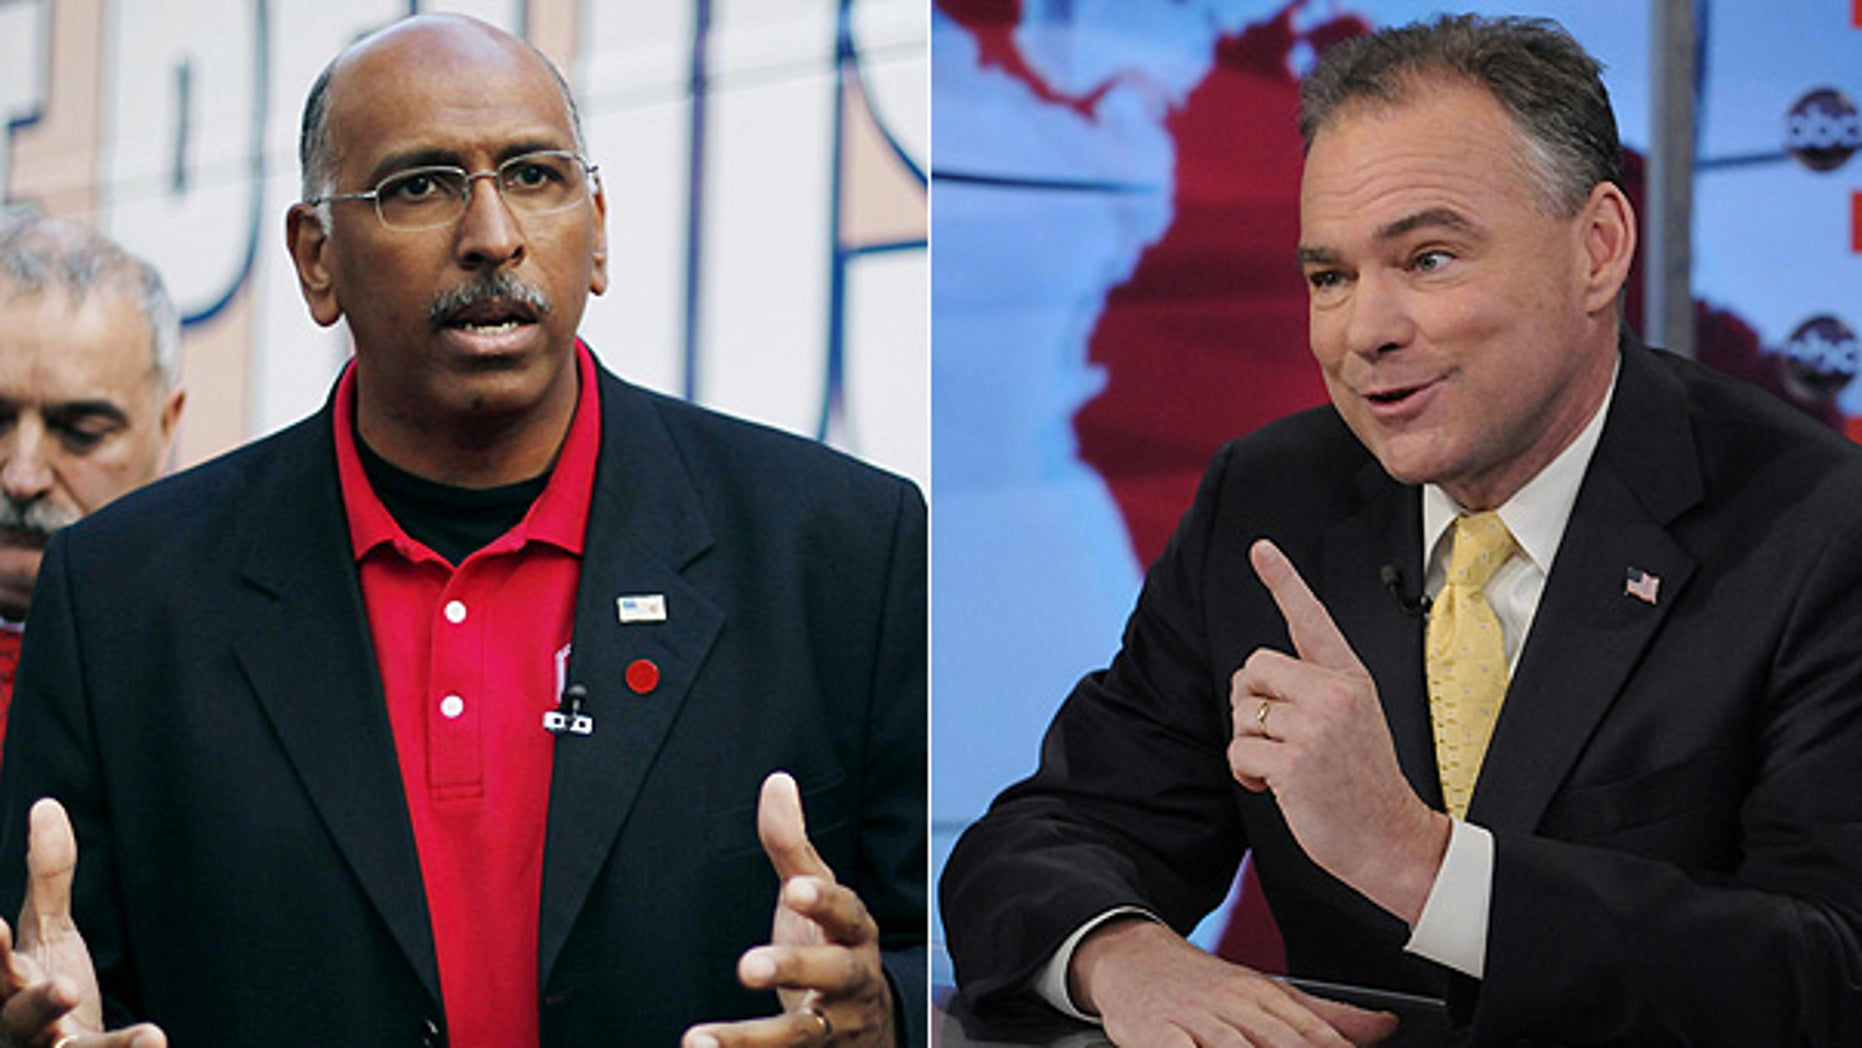 Republican National Committee Chairman Michael Steele, left, and Democratic National Committee Chairman Tim Kaine.